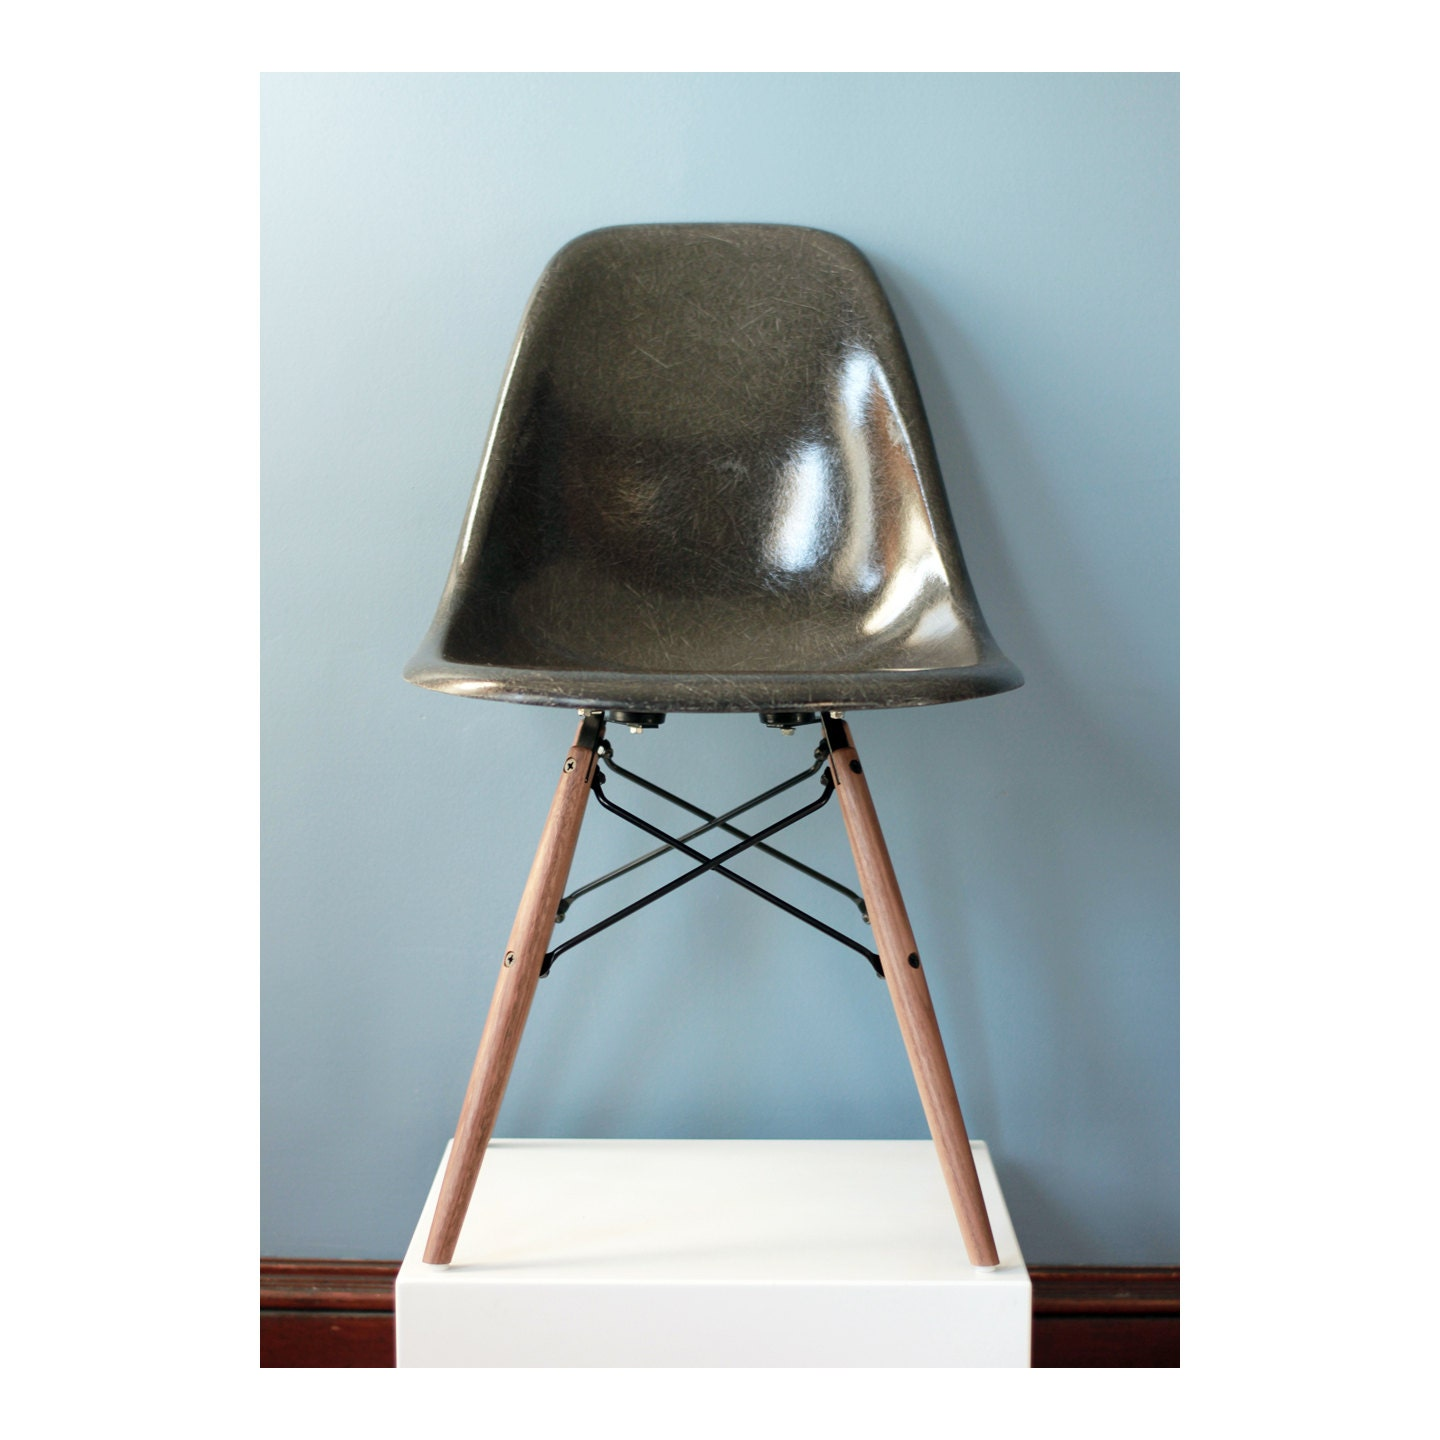 herman miller eames chair charcoal gray by thearbitrarium. Black Bedroom Furniture Sets. Home Design Ideas